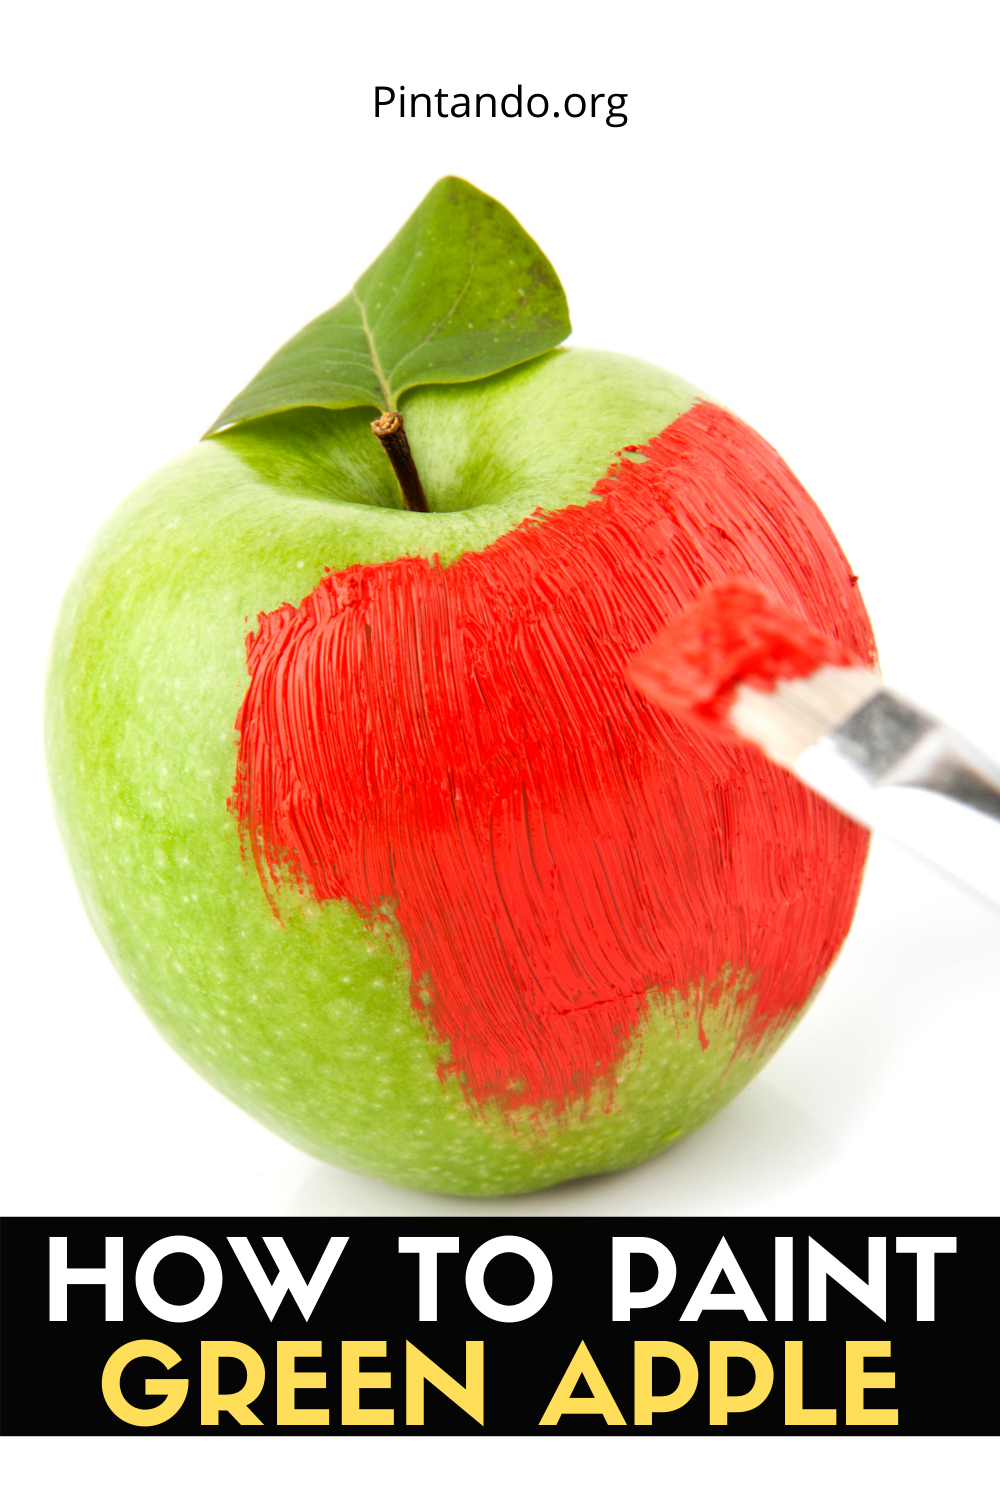 HOW TO PAINT GREEN APPLE (1)